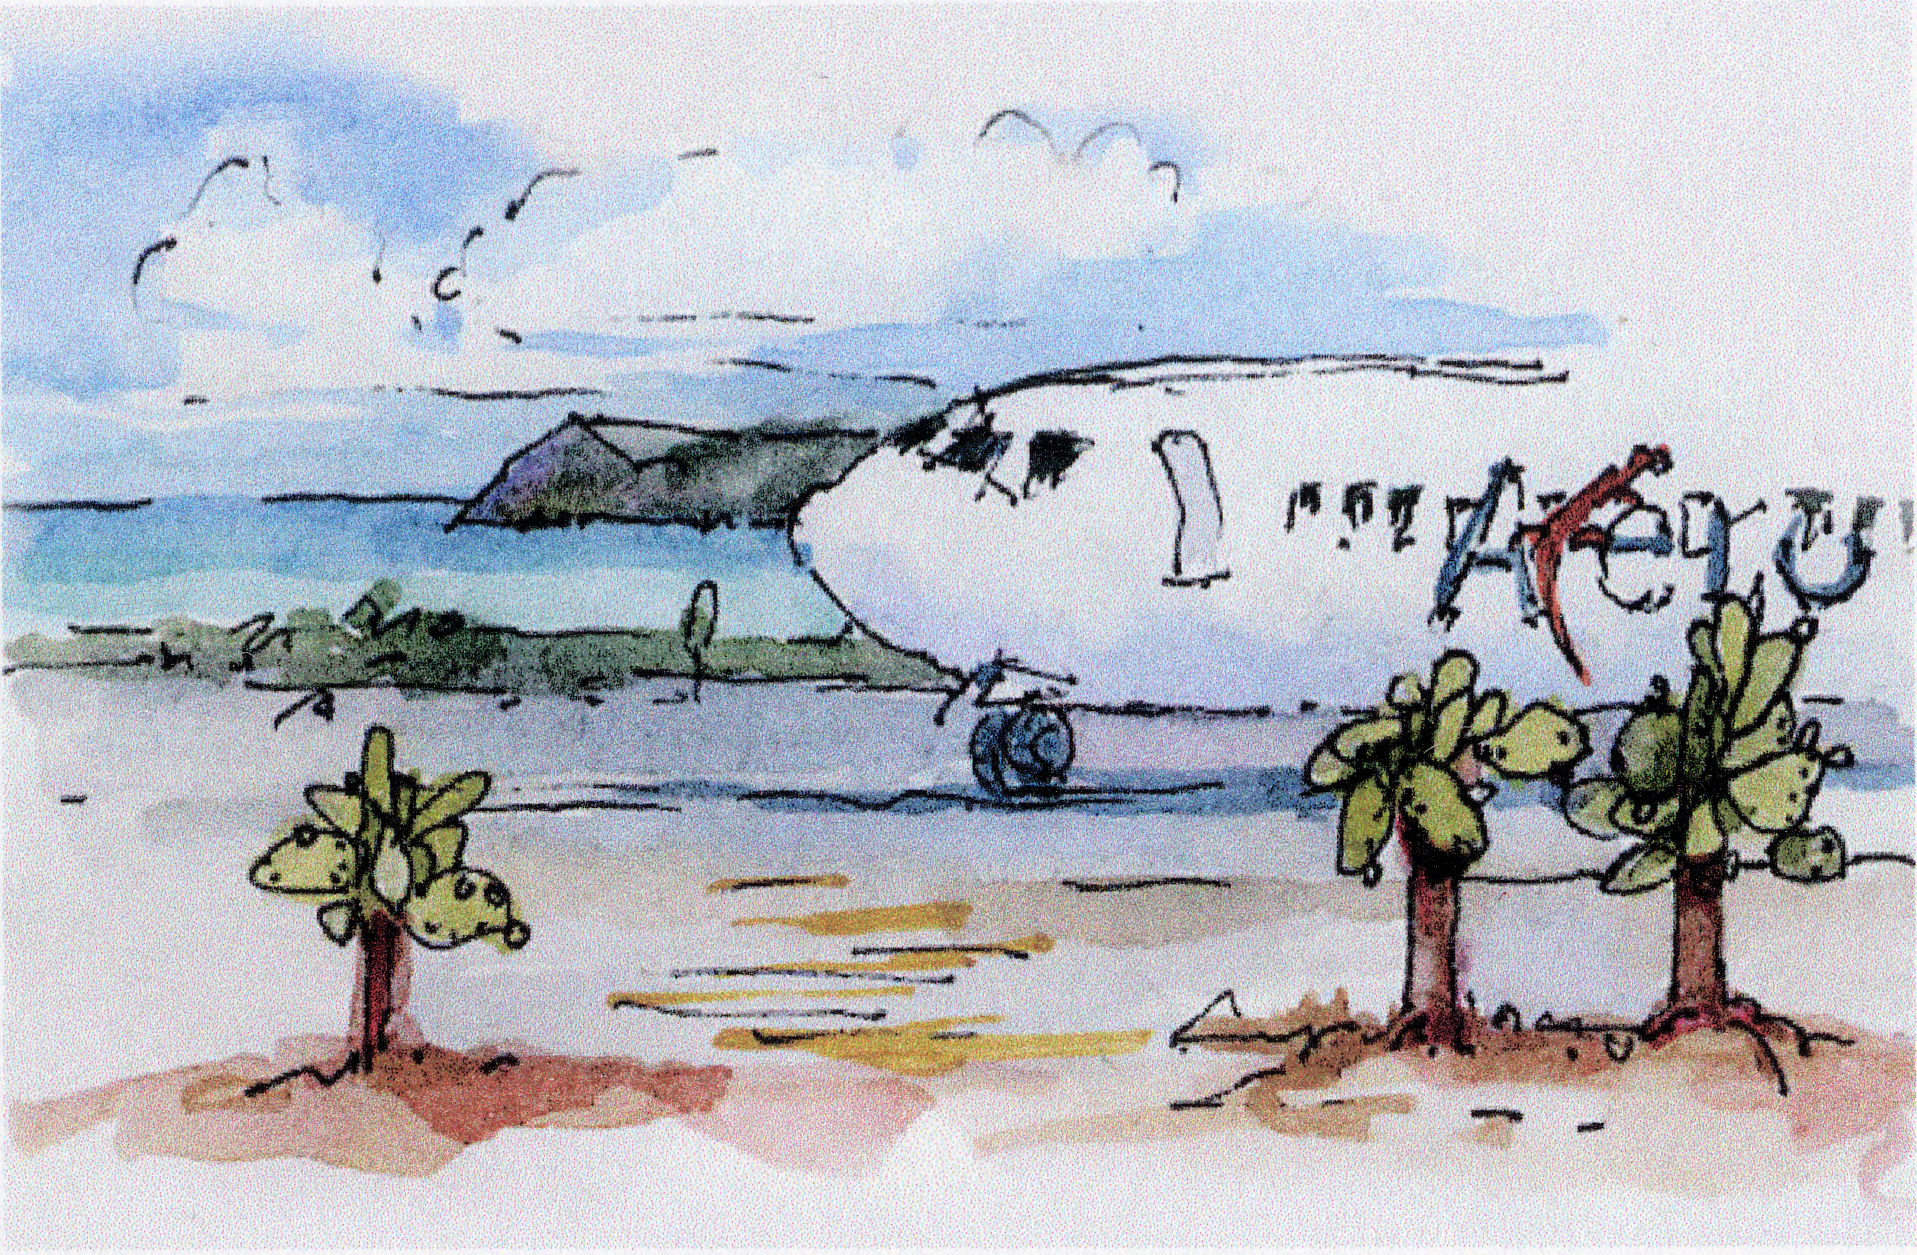 Galapagos air strip